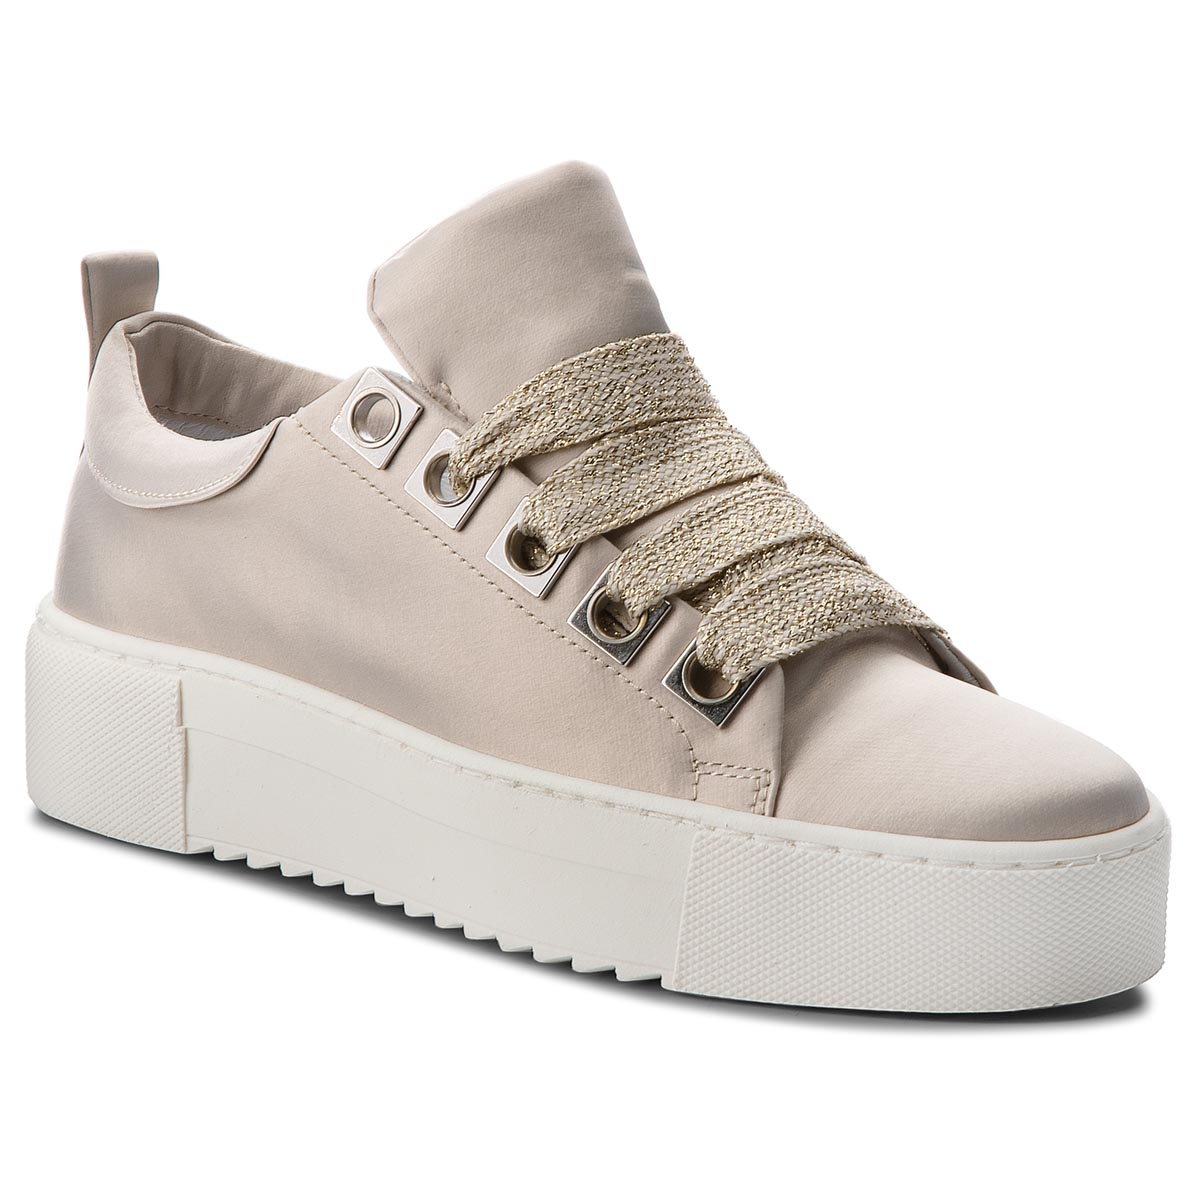 Sneakersy BRONX - 66121-A BX 1483 Champagne 2207